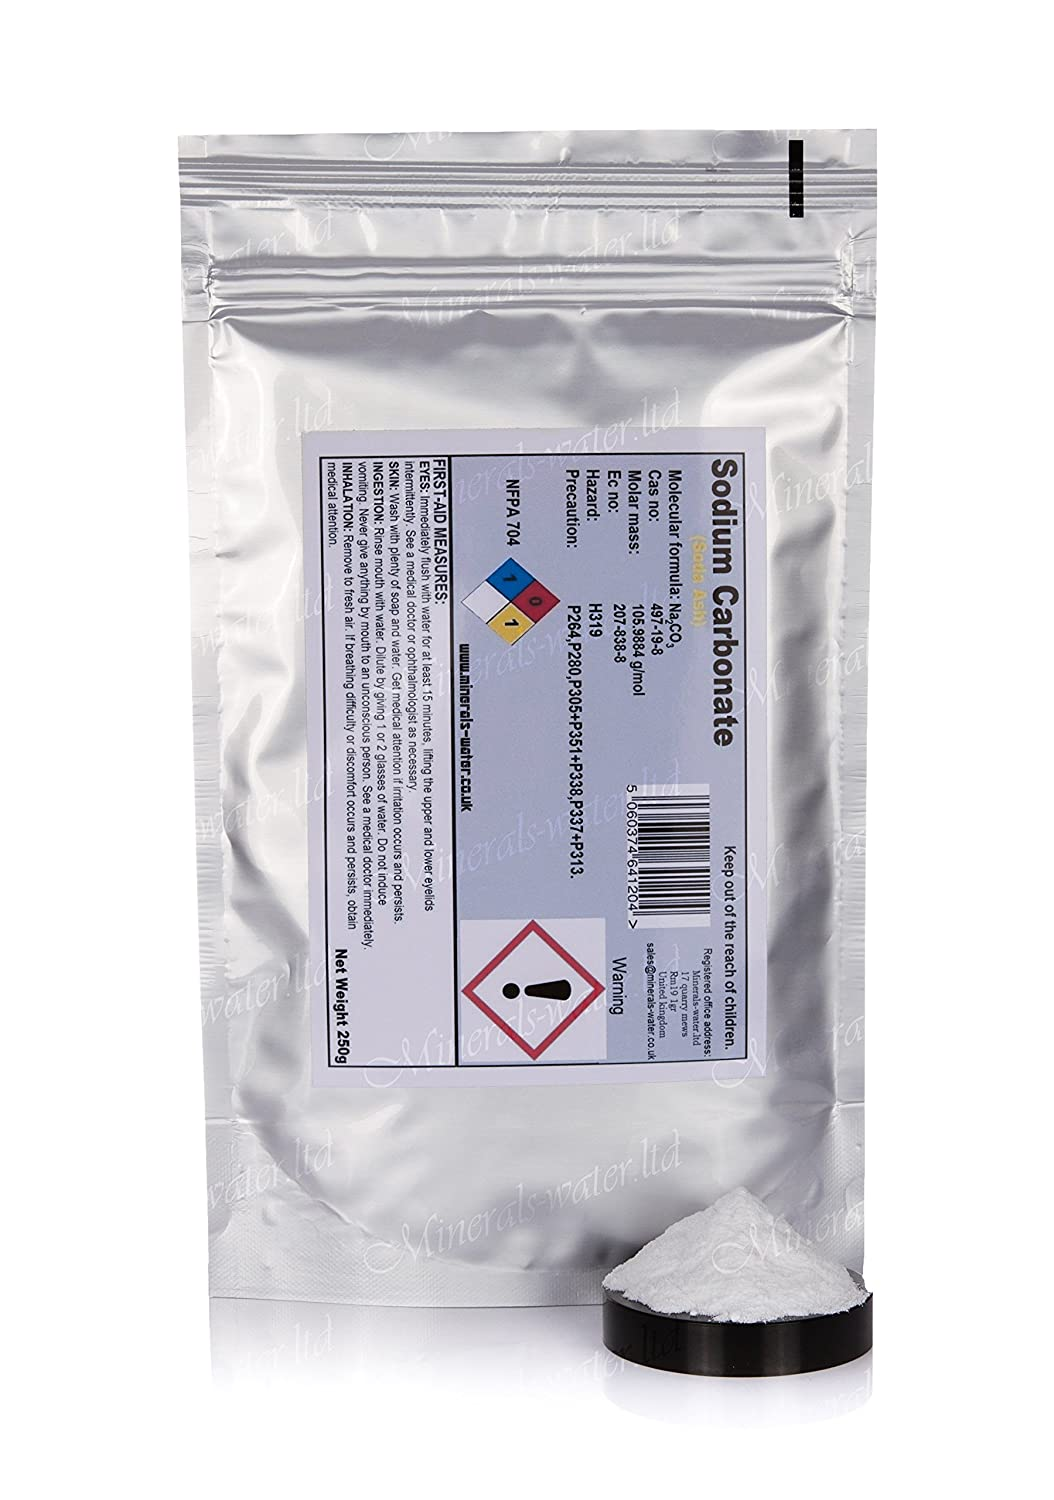 250g Sodium carbonate powder (soda ash)PH+,dye fixative Minerals-water